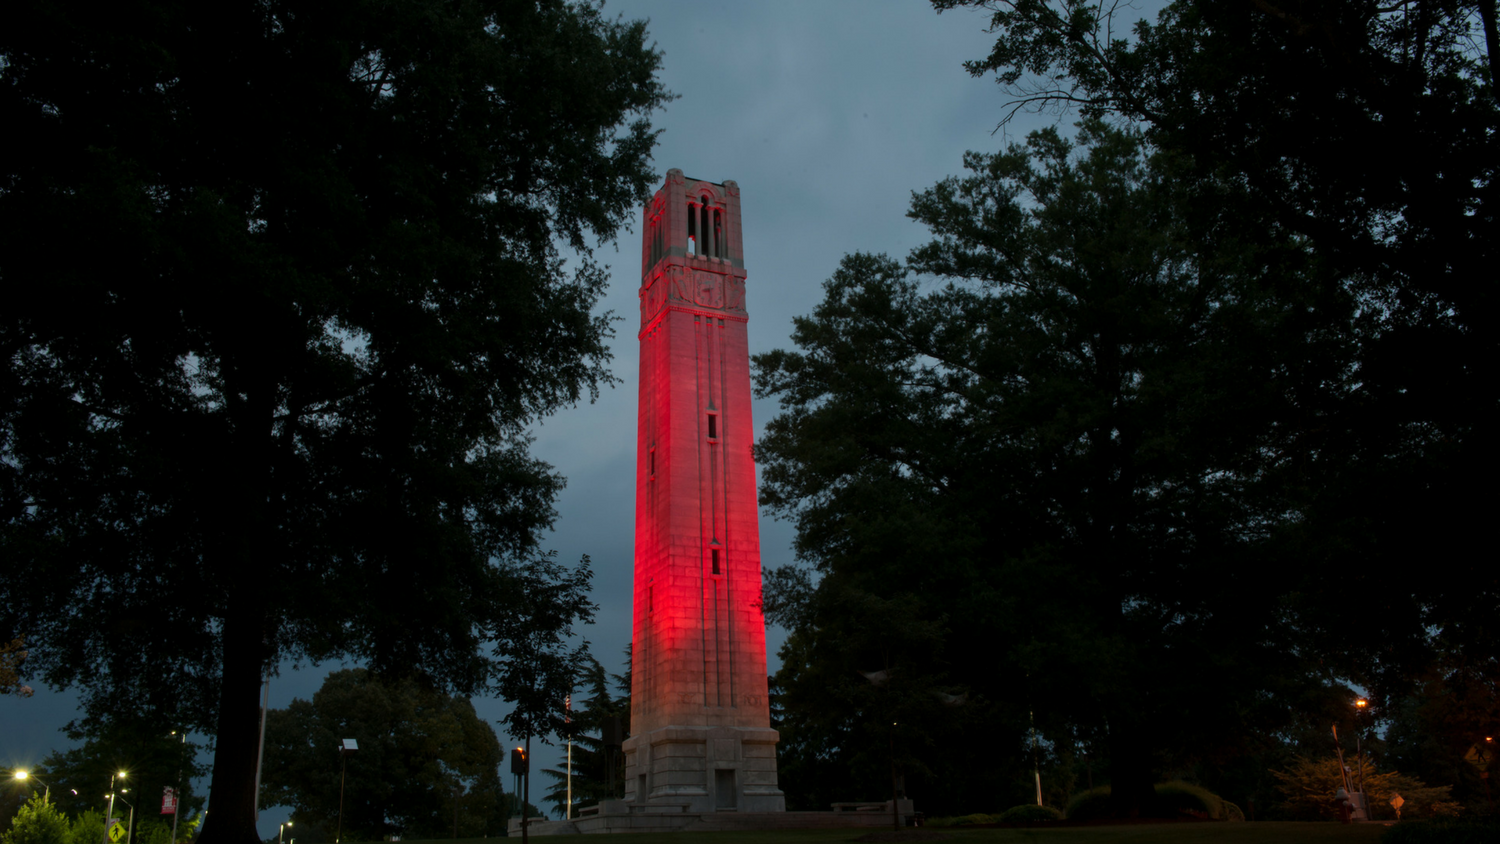 Bell tower at dusk lit with red light